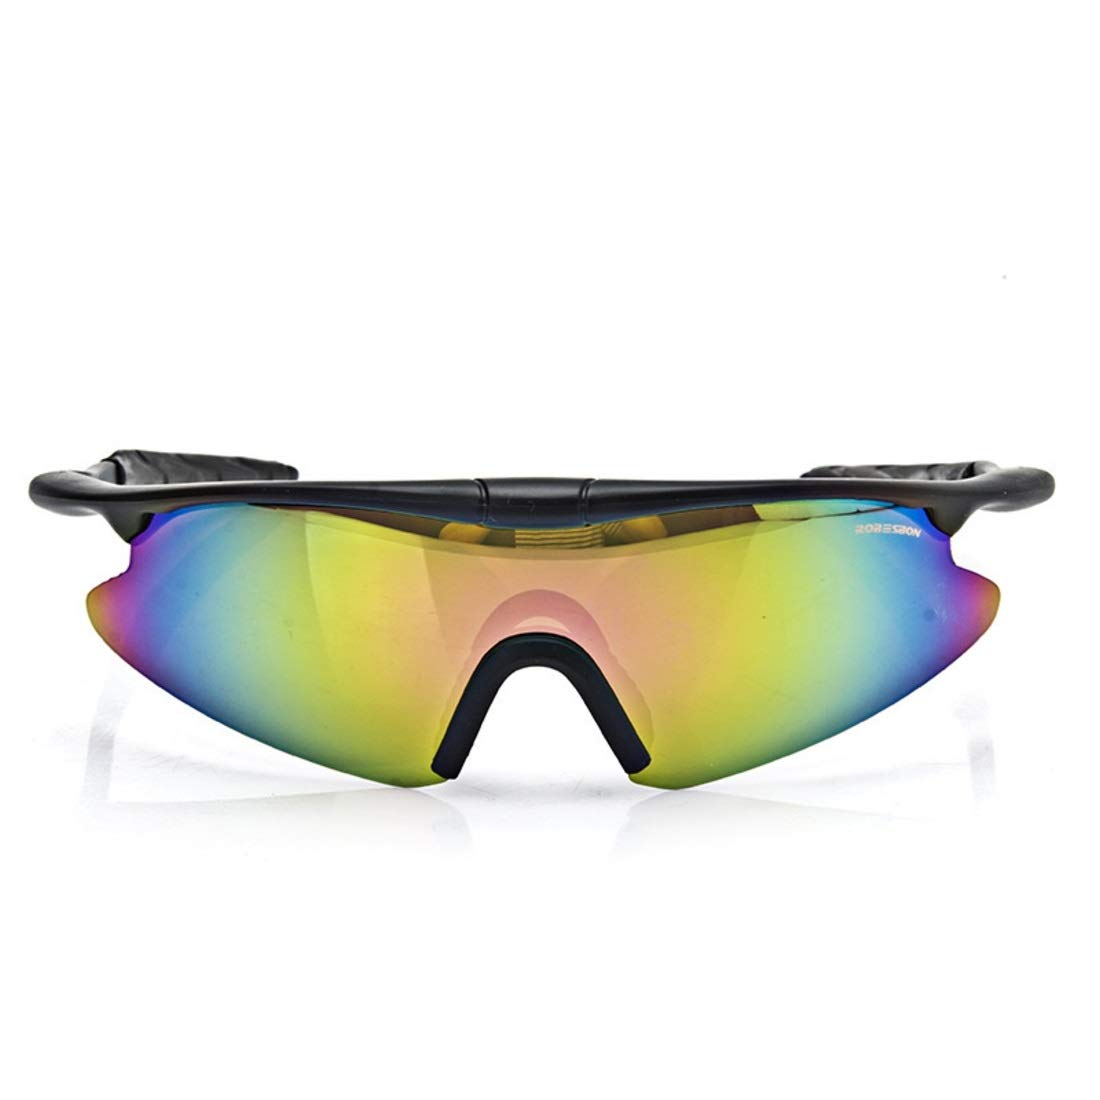 BAOYIT Riding Glasses Mountain Bike Windproof Sand Sunglasses Running Hiking Outdoor Sunglasses for Women Men (Color : Multi-Colored) by BAOYIT